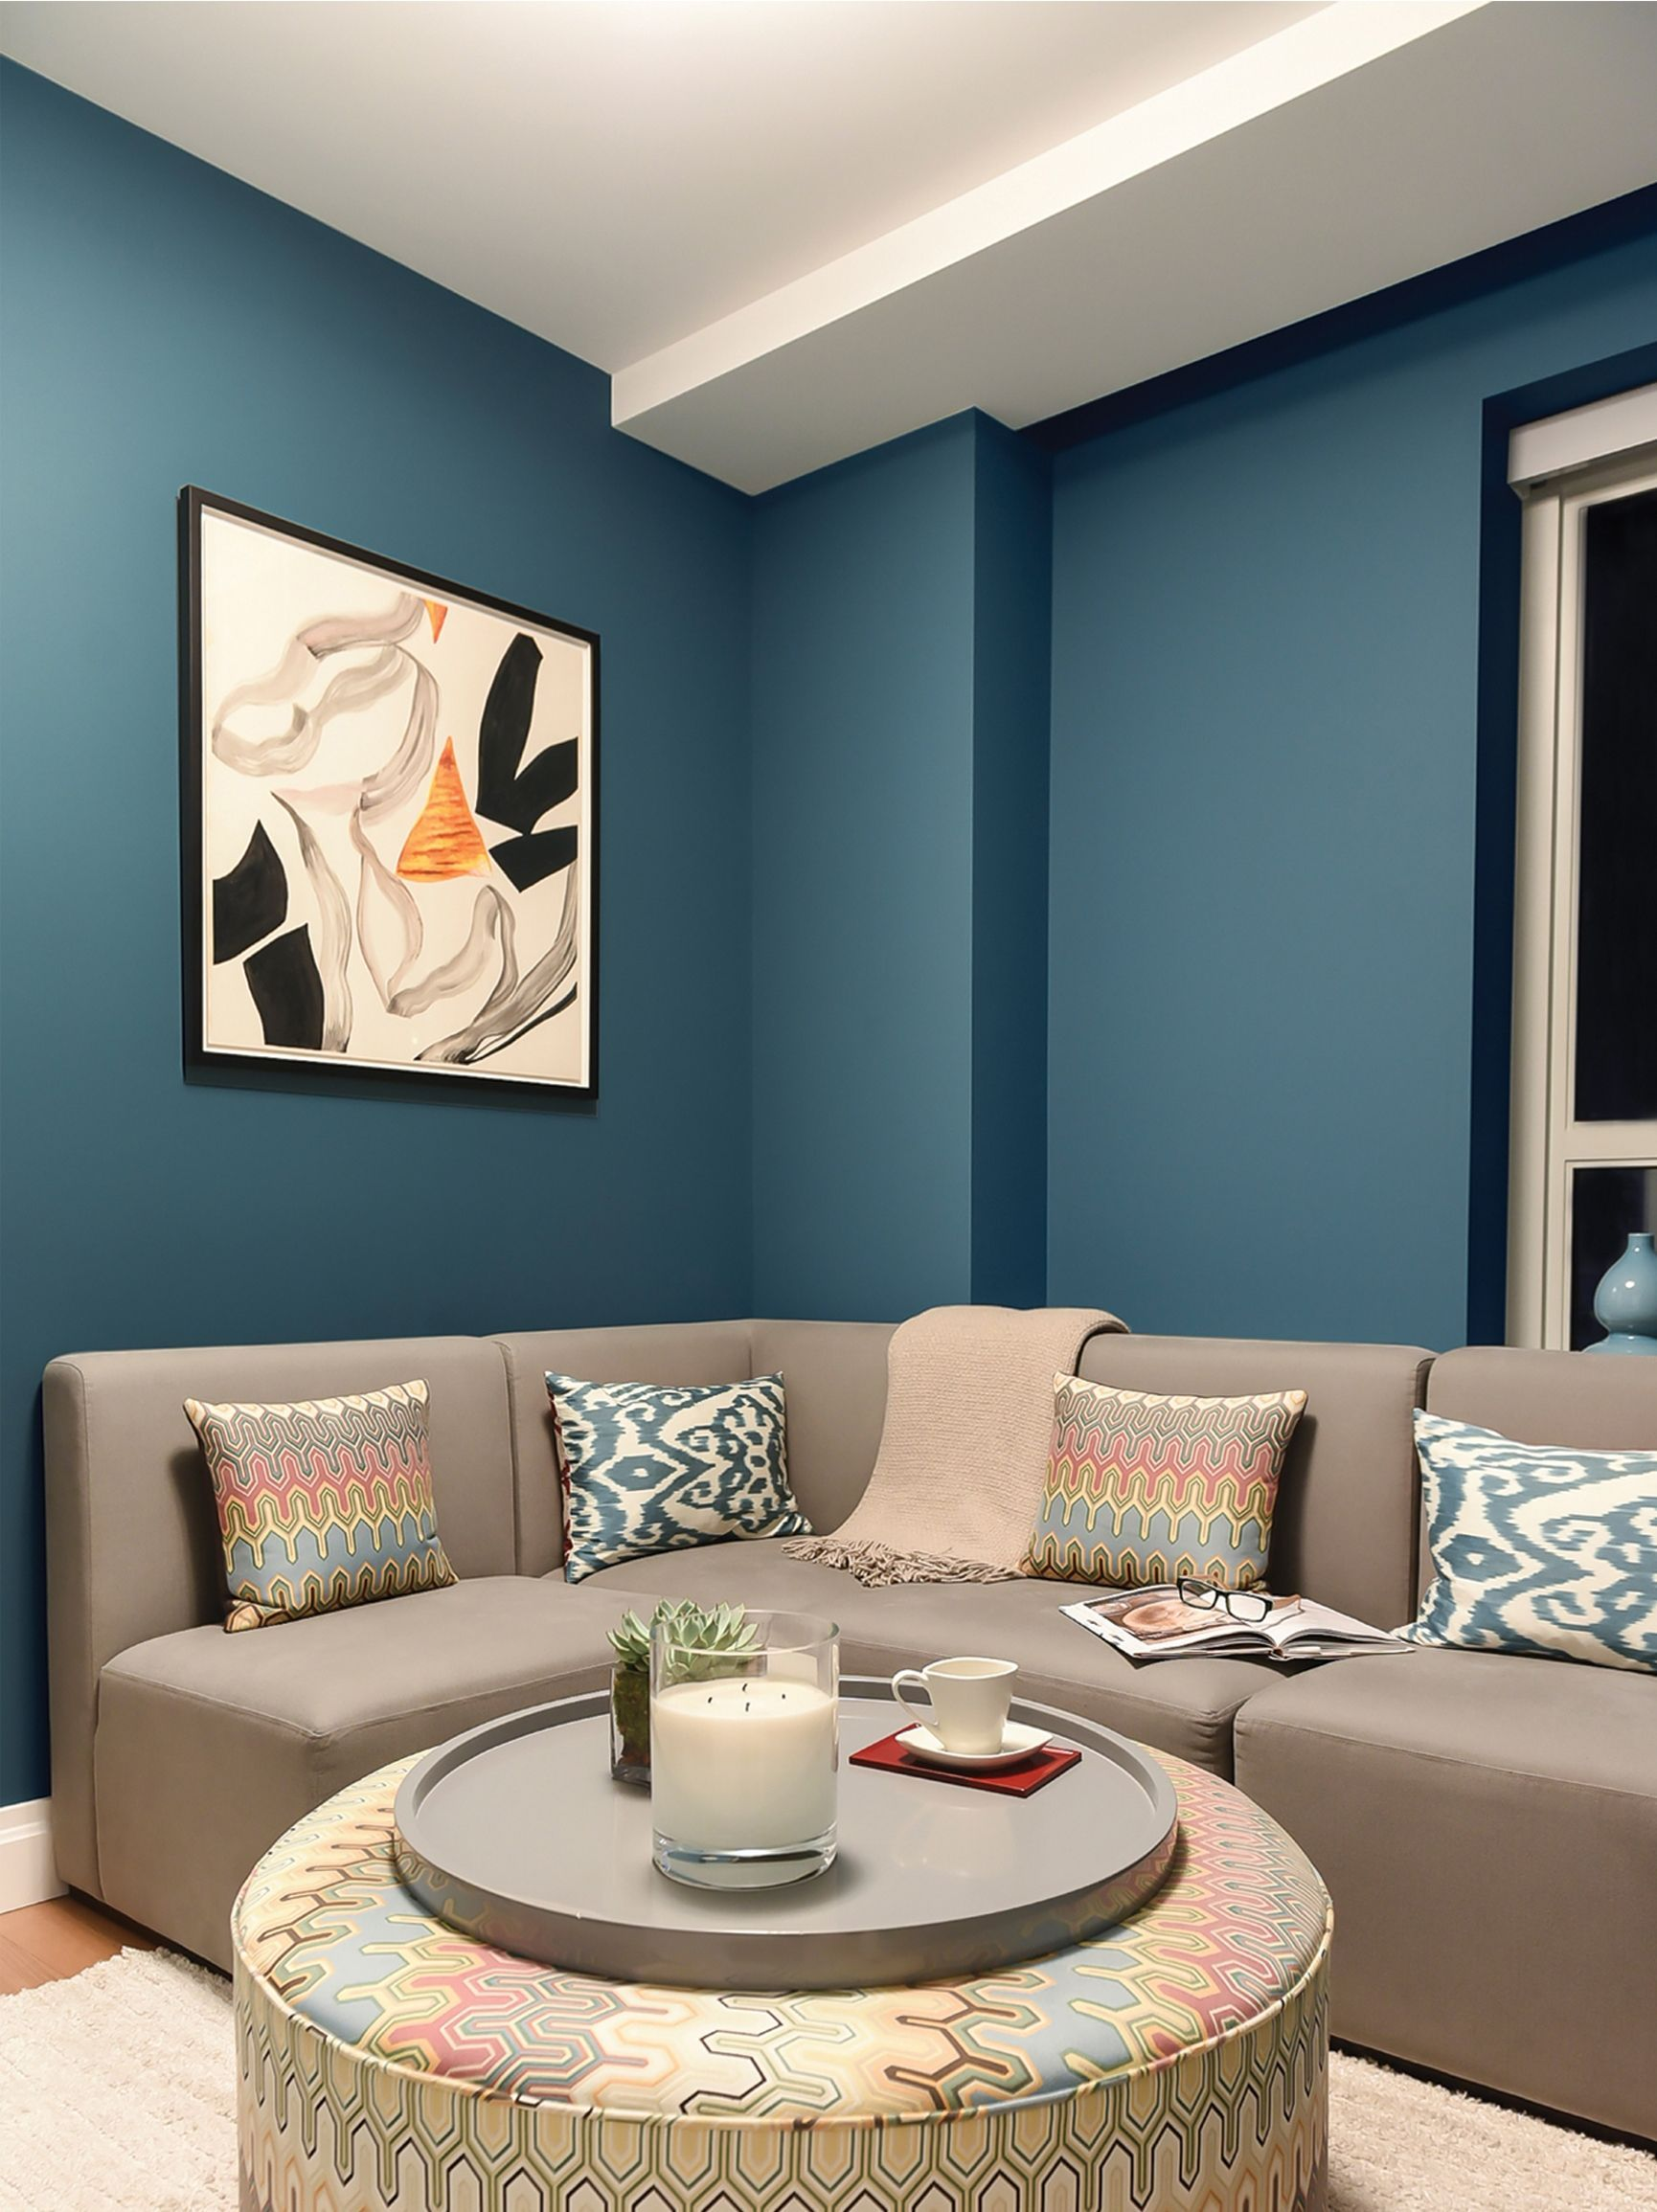 Color Of The Month June 2019 Bluestone Living Room Colors Living Room Wall Color Blue Living Room De In 2021 Living Room Wall Color Living Room Colors Room Wall Colors Living room wall colors